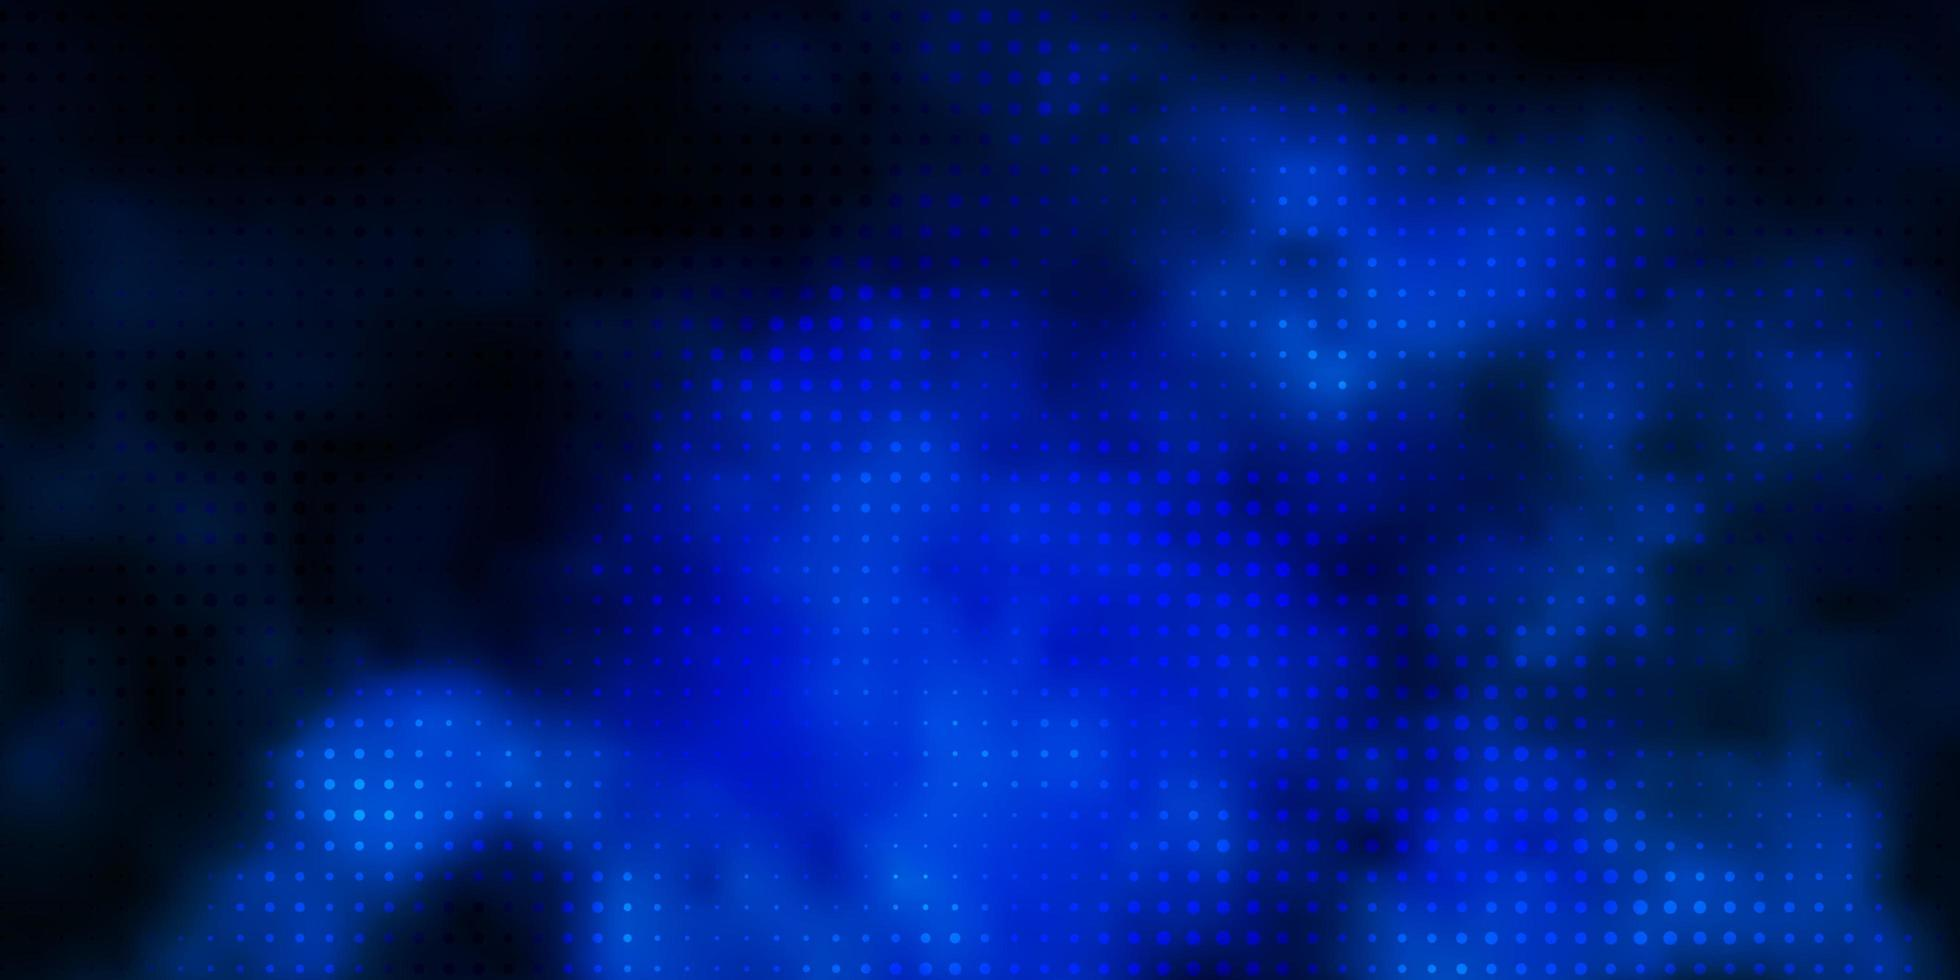 Dark BLUE vector texture with circles.